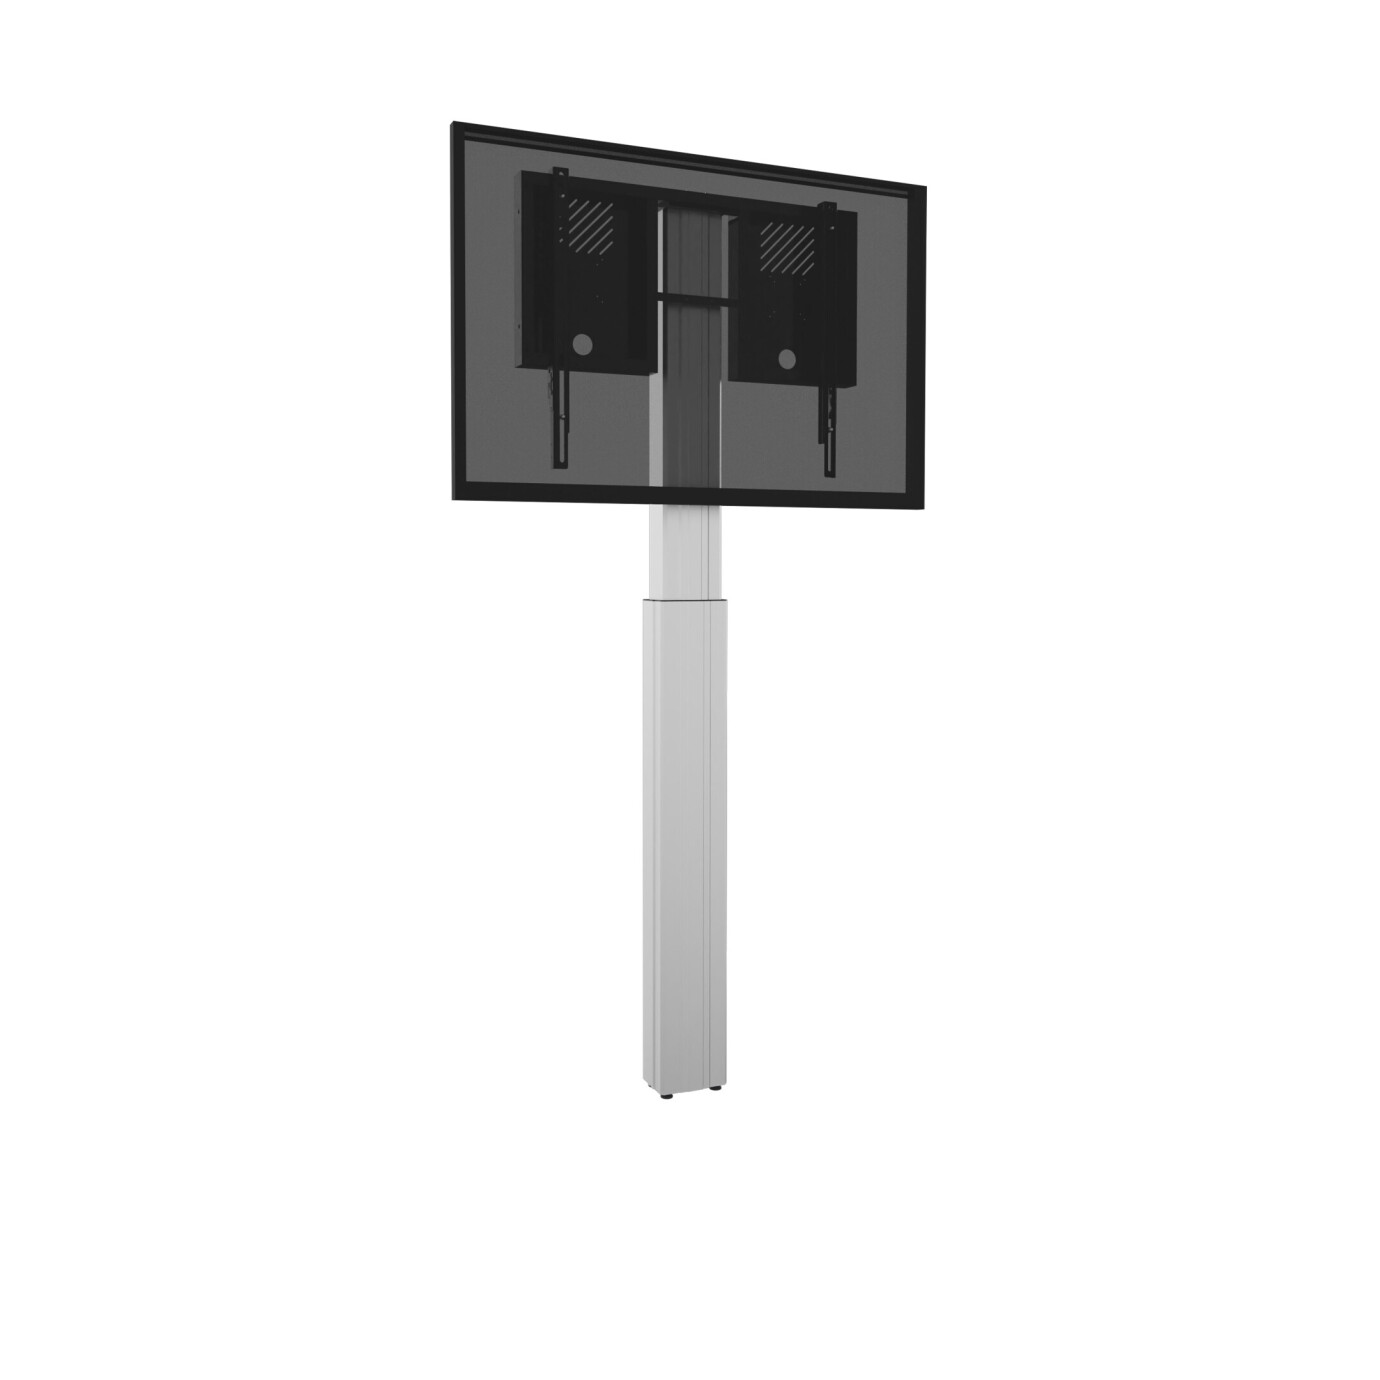 celexon Expert electric height adjustable display stand Adjust-4286WS with wall mounting - 90cm